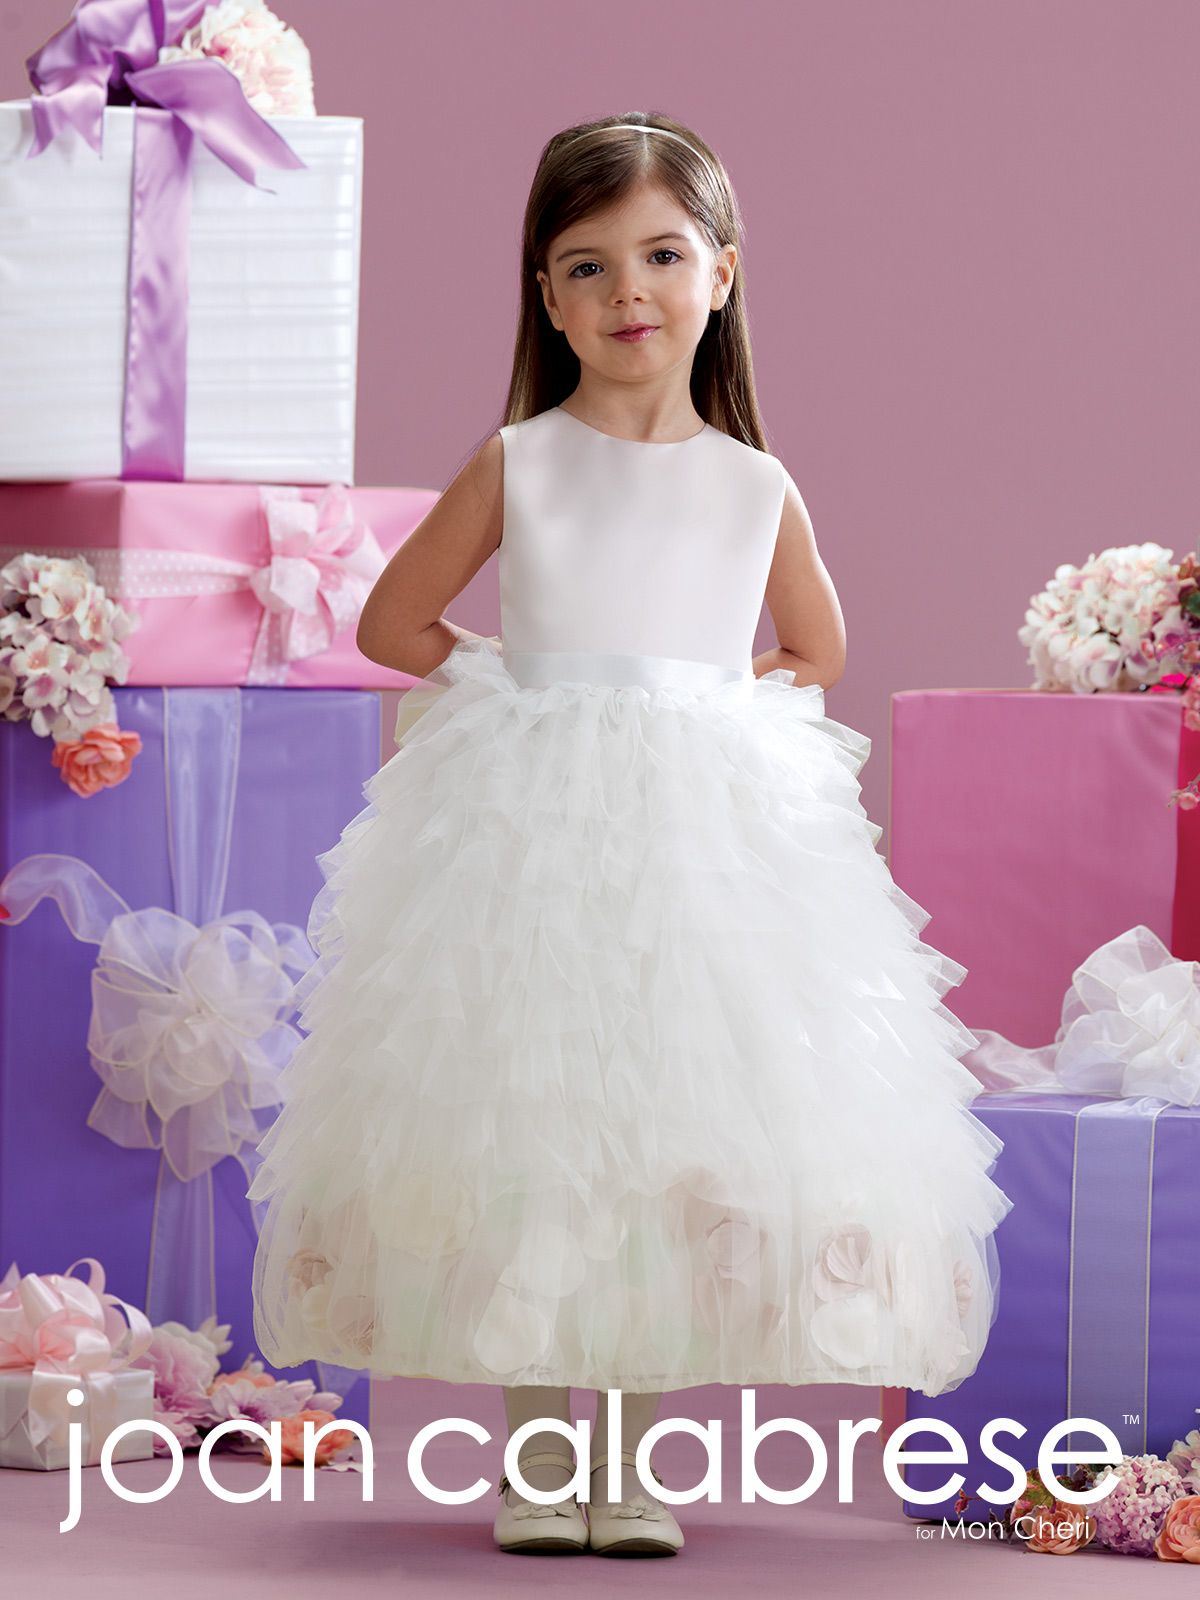 a5909f761 ... A-line dress, jewel neckline, satin bodice, removable double faced  satin ribbon ties in back, multi-tiered ruffled tulle skirt with incased  large petals ...